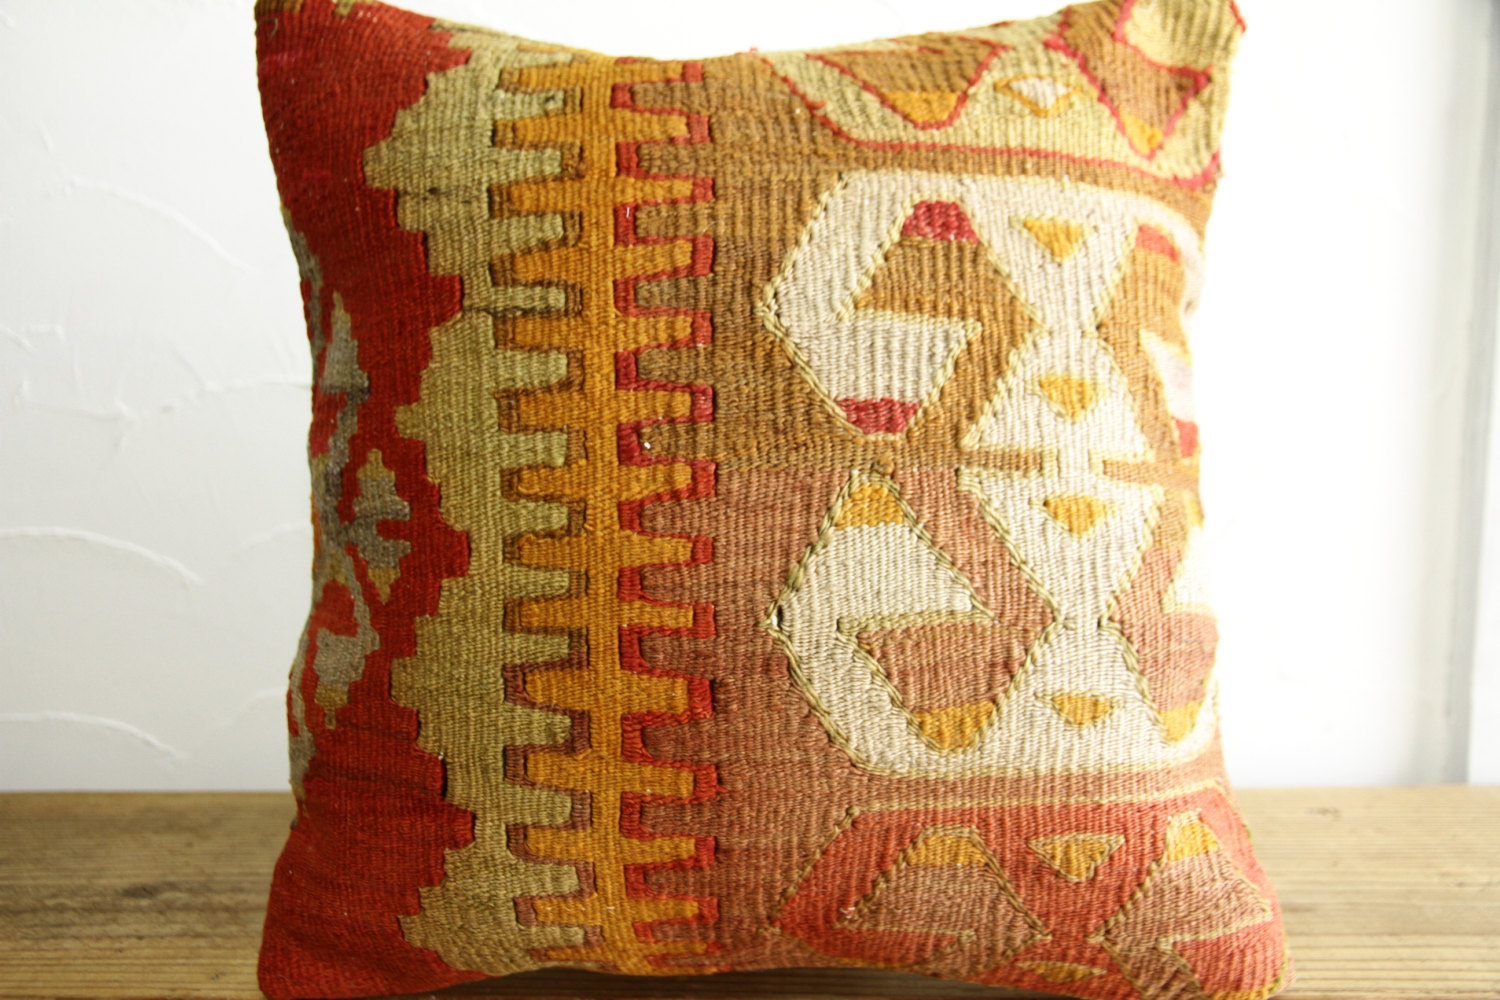 Kilim Pillows |16x16 | Decorative Pillows | 436 | Accent Pillows turkish pillow